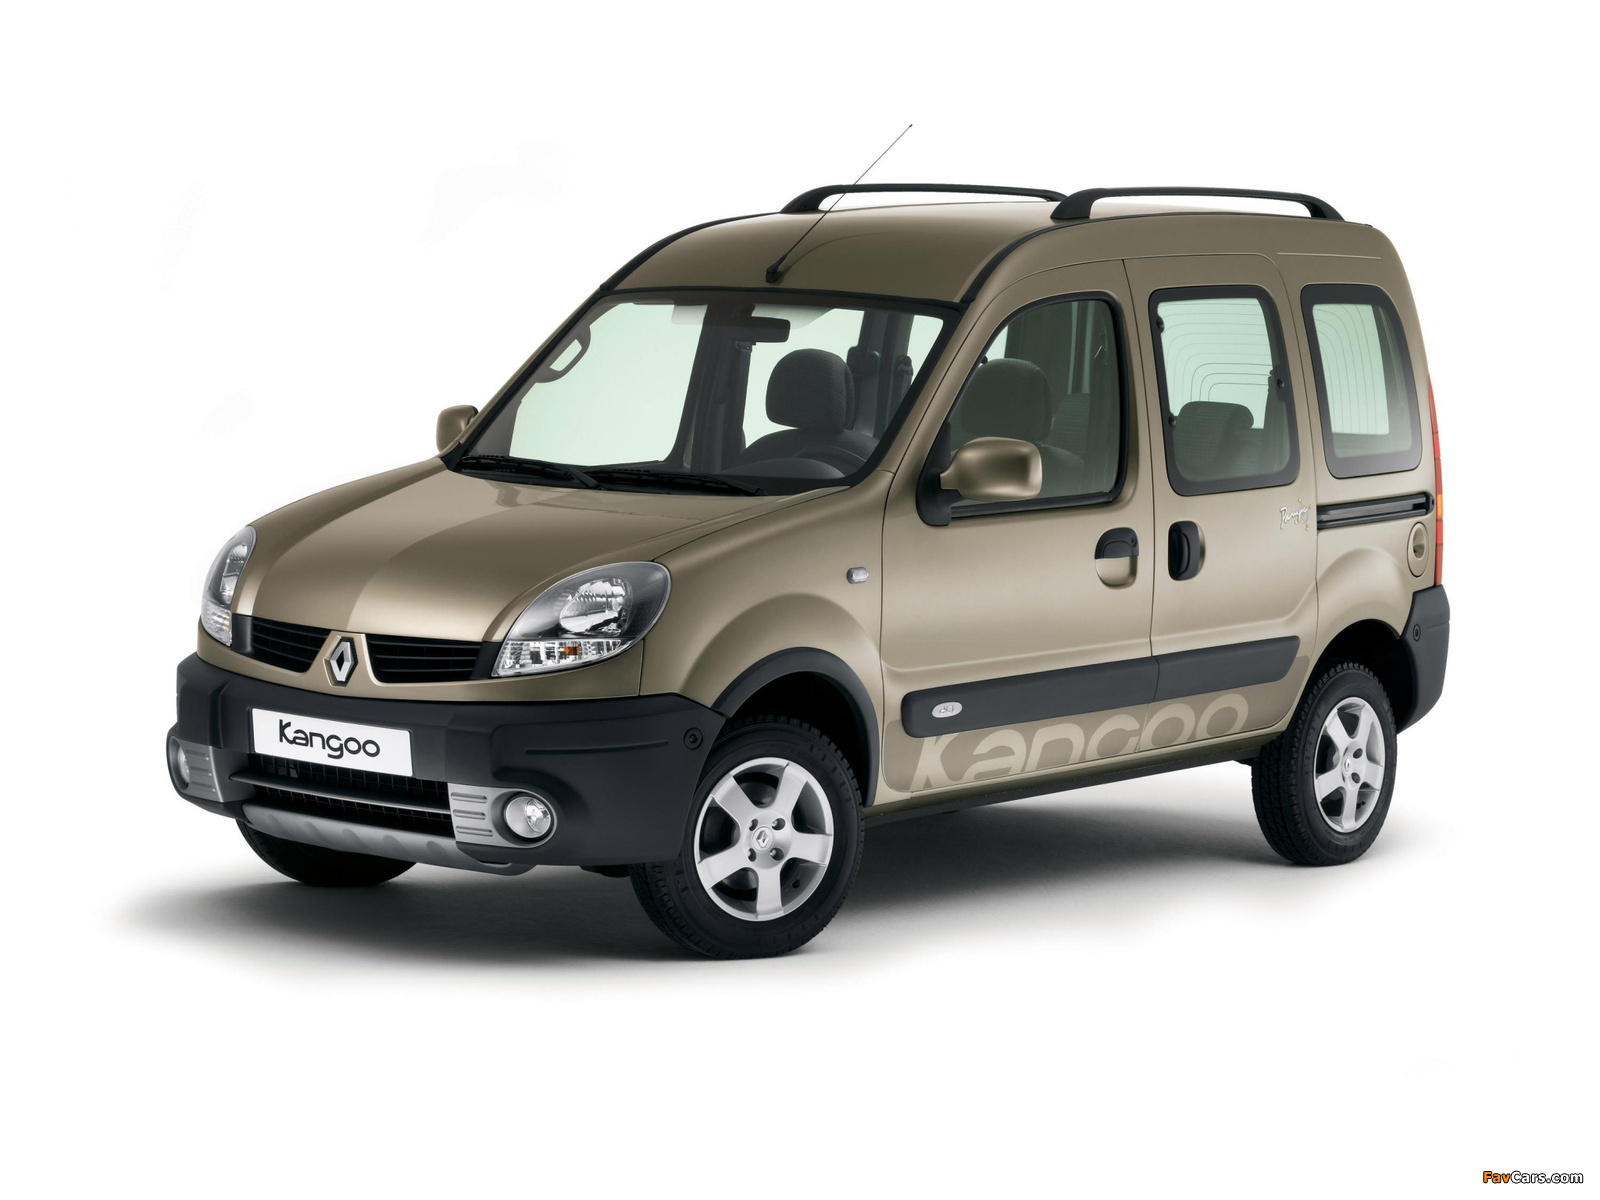 renault kangoo 4x4 2004 07 wallpapers 1600x1200. Black Bedroom Furniture Sets. Home Design Ideas